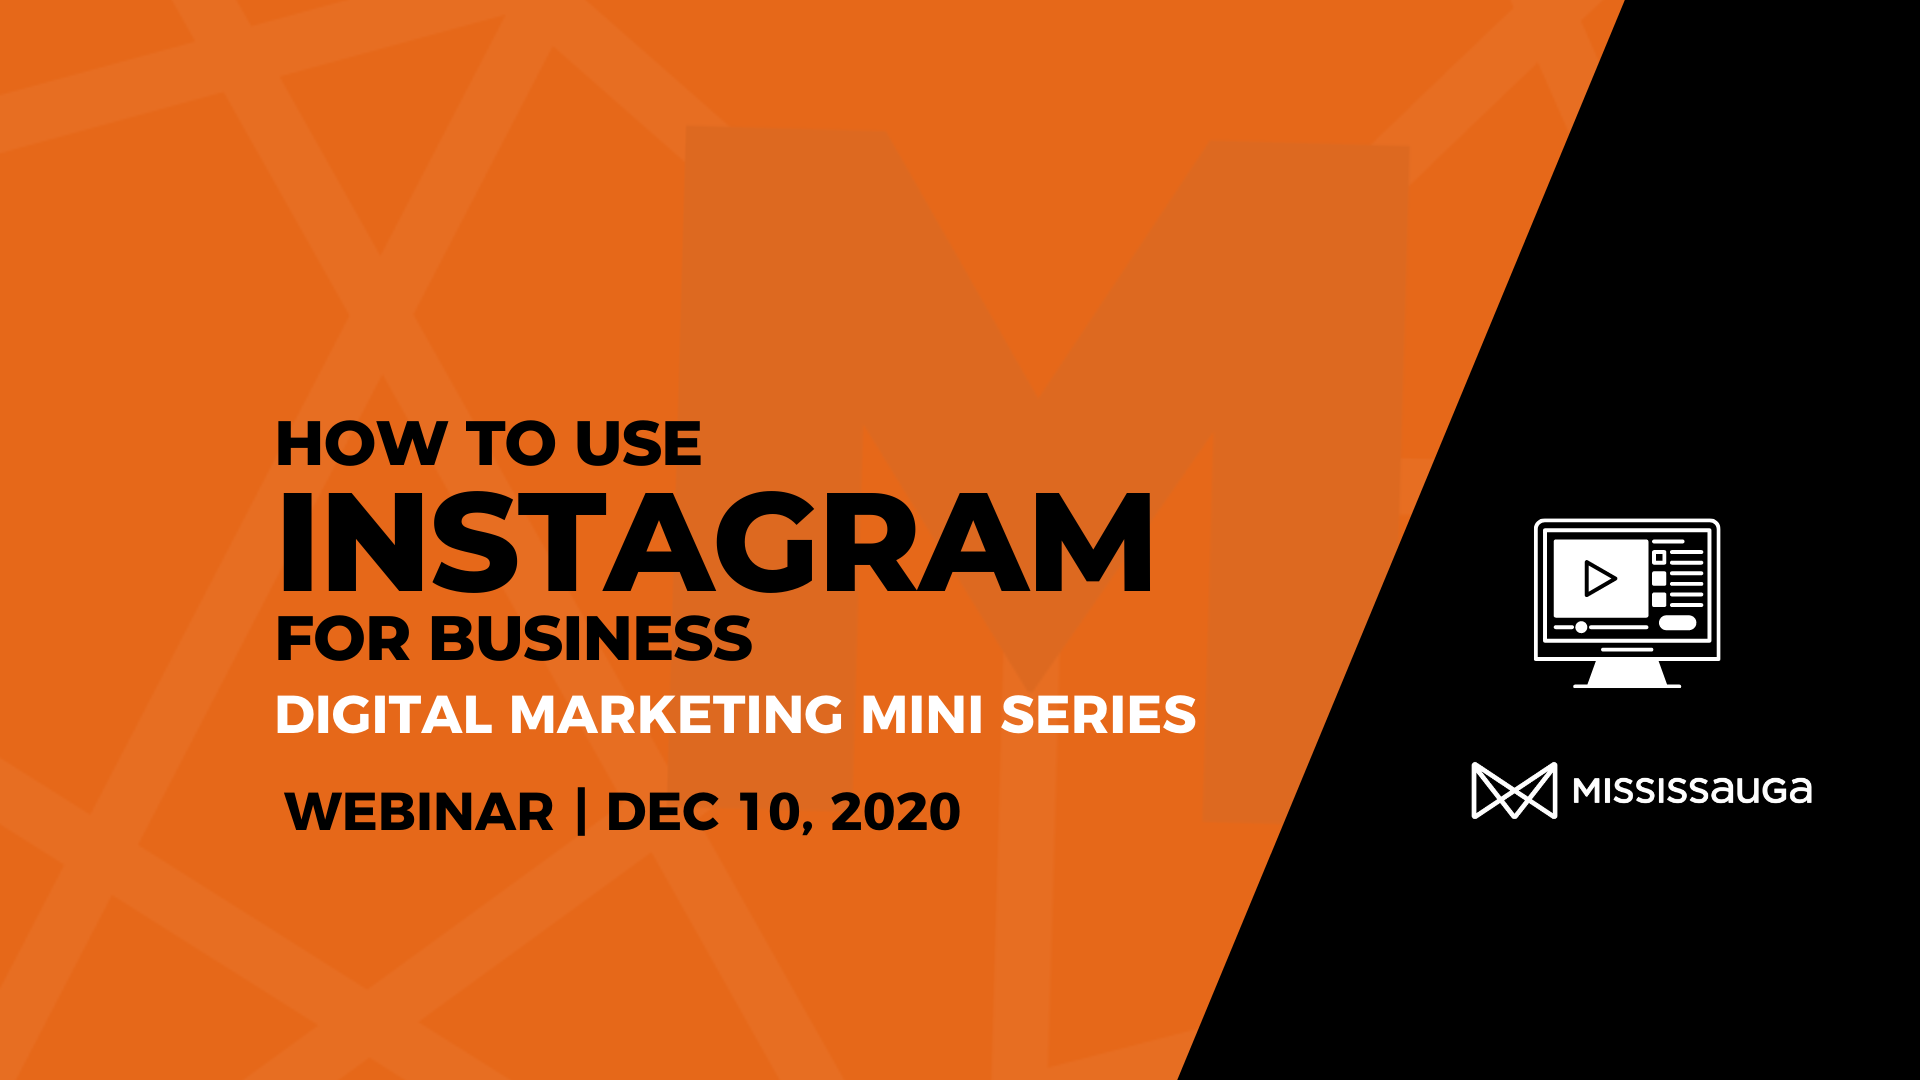 How to Use Instagram for Business – Webinar, Dec 10